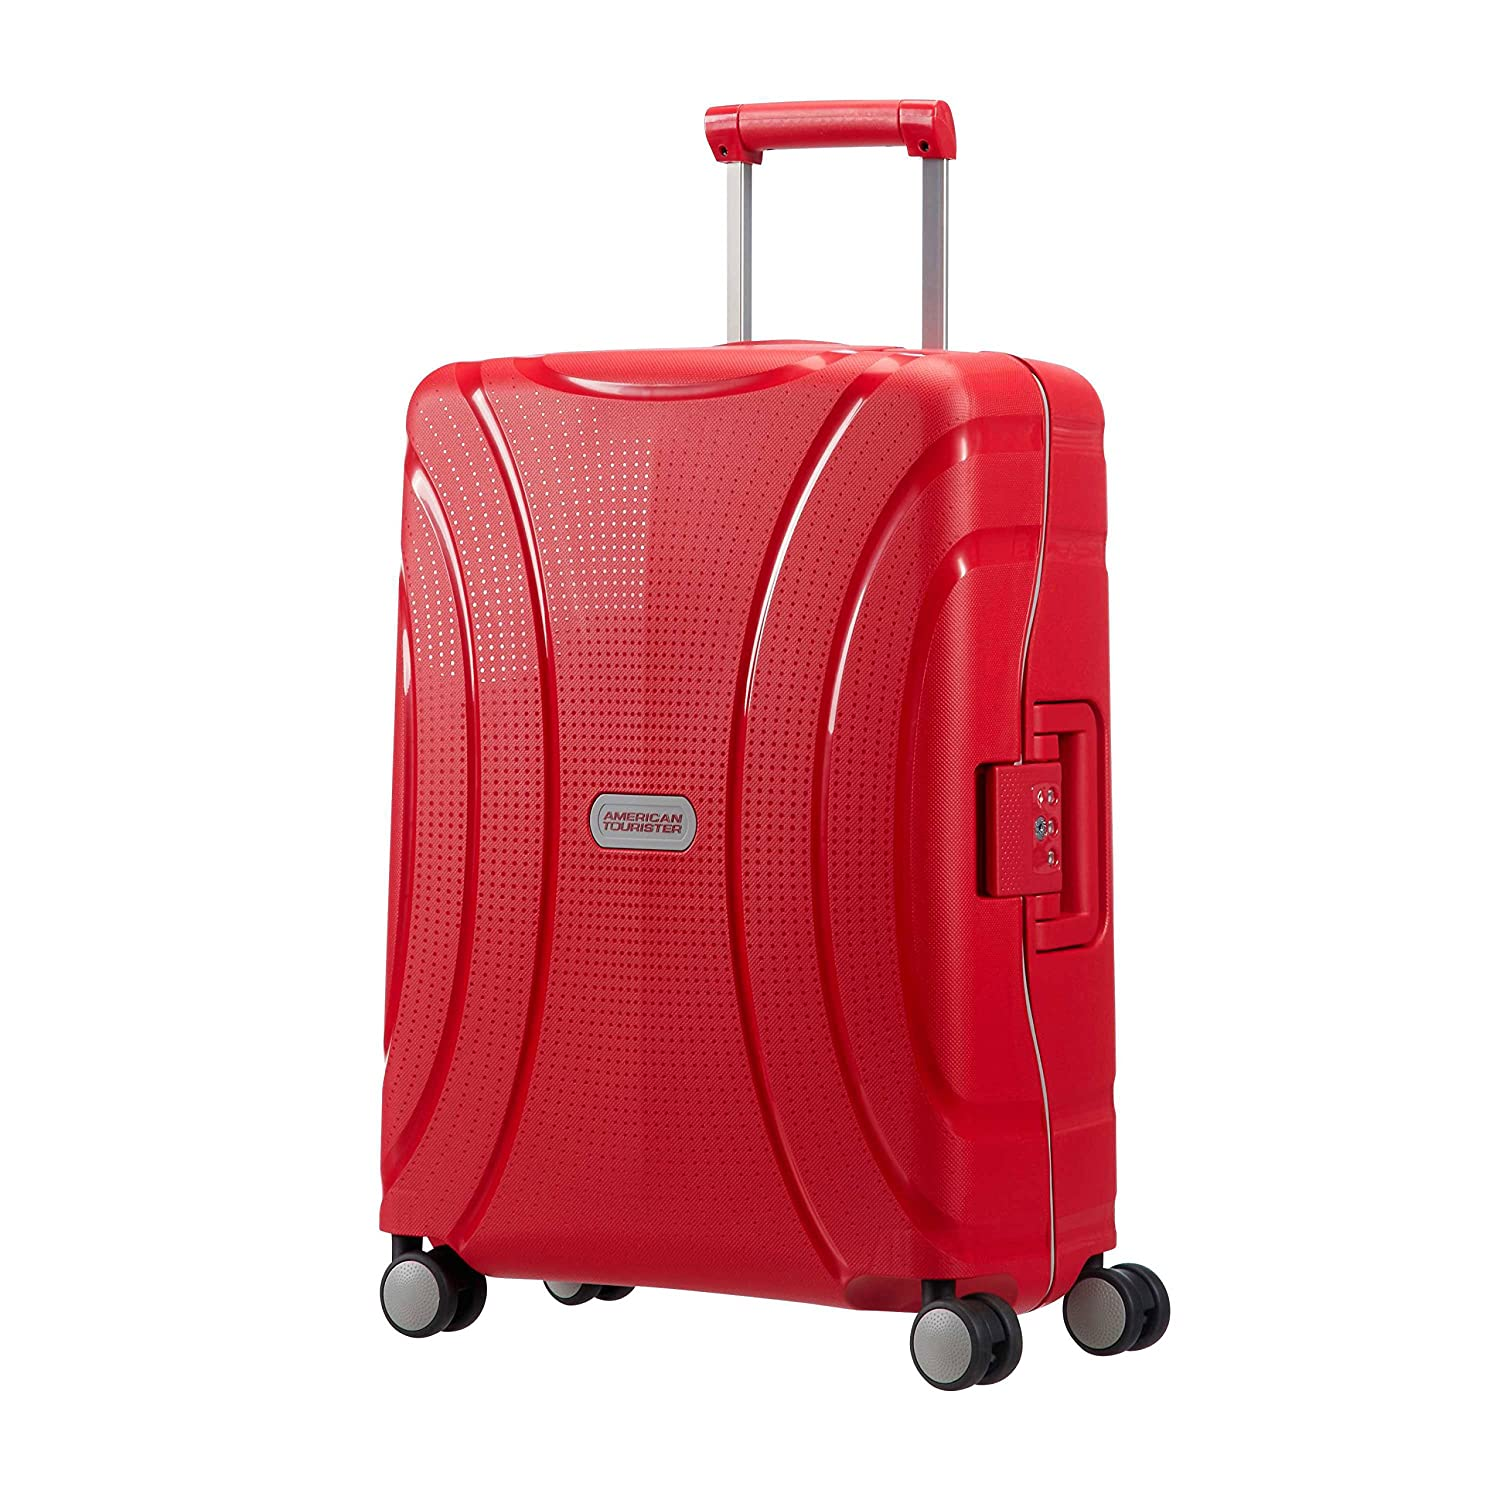 9b2e275d975e Travel Bags With Wheels American Tourister- Fenix Toulouse Handball